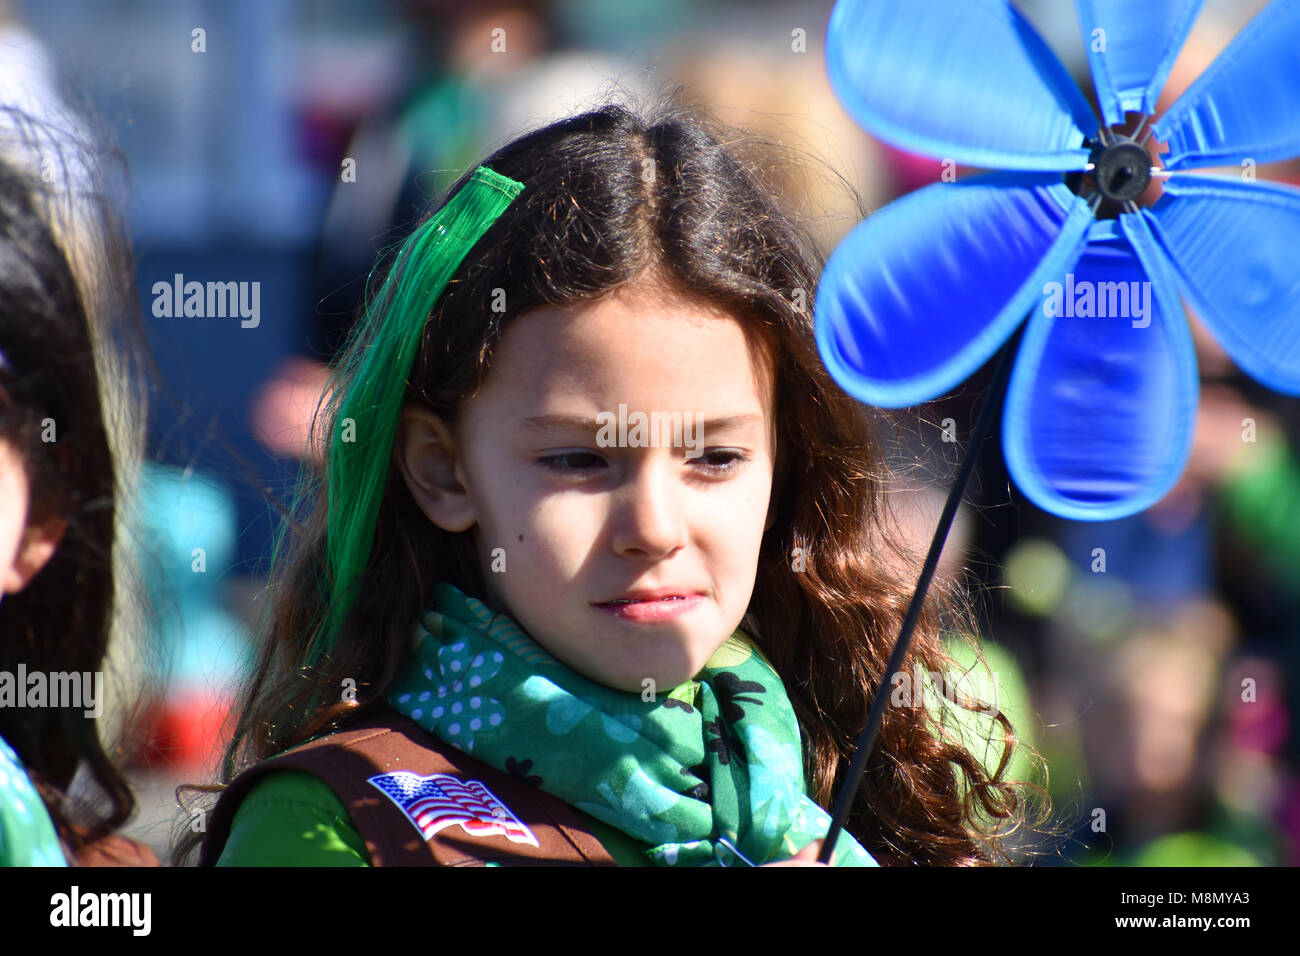 A young girl scout in the Bellingham, WA. St. Patrick's Day Parade on March 17, 2018.  A U.S. flag patch is - Stock Image